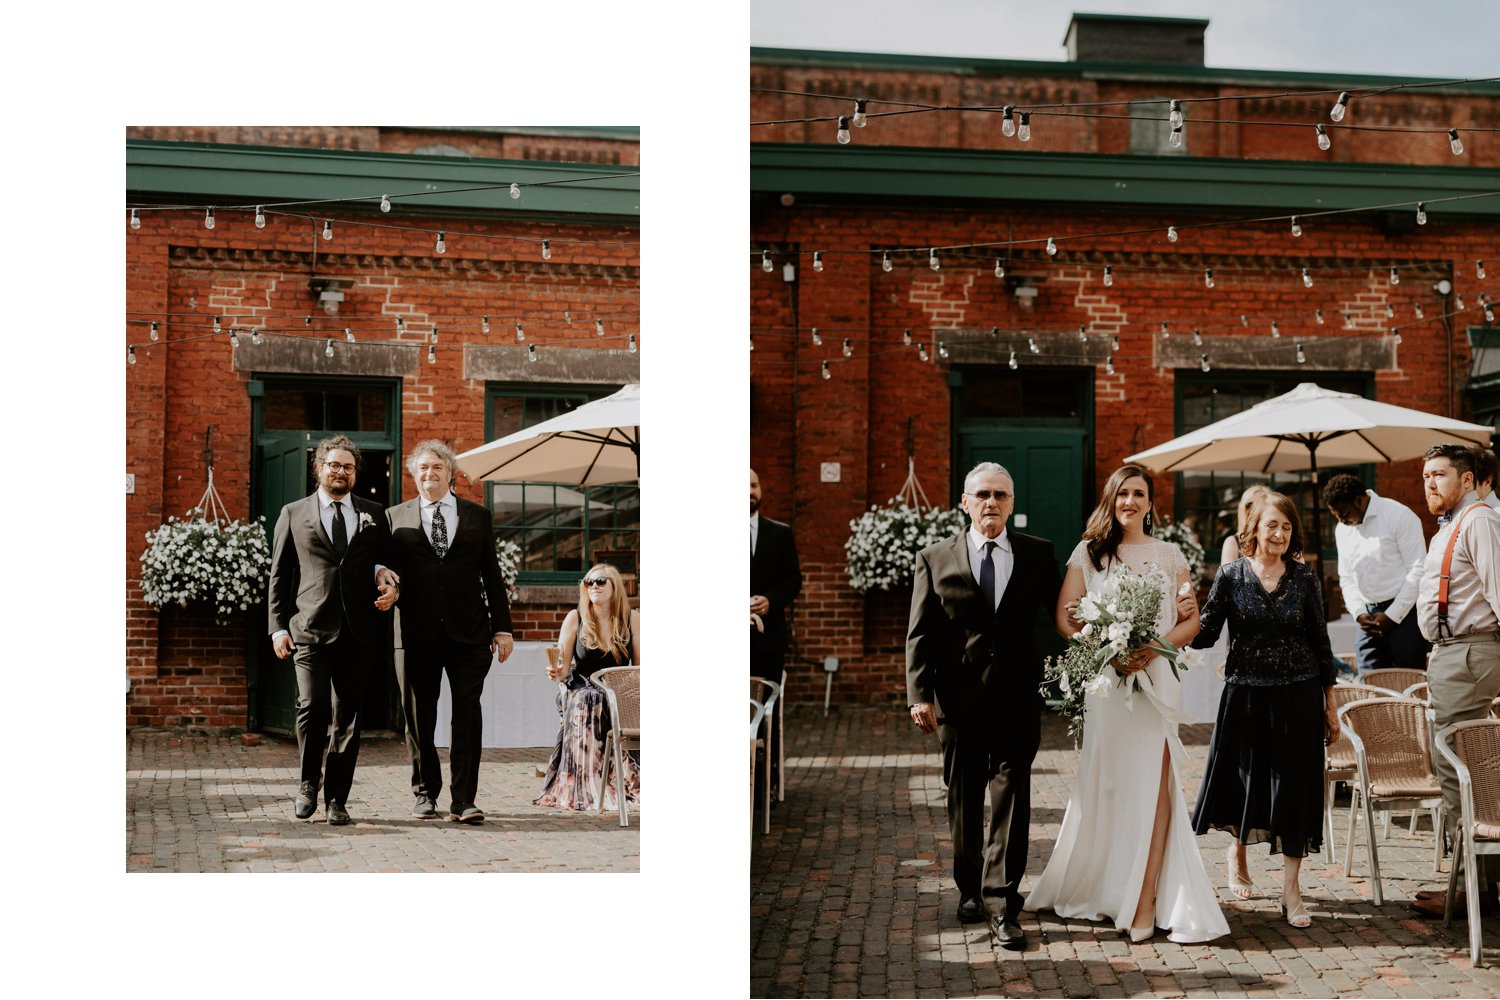 Archeo Wedding - Bride and groom walk down the aisle - Distillery District Toronto